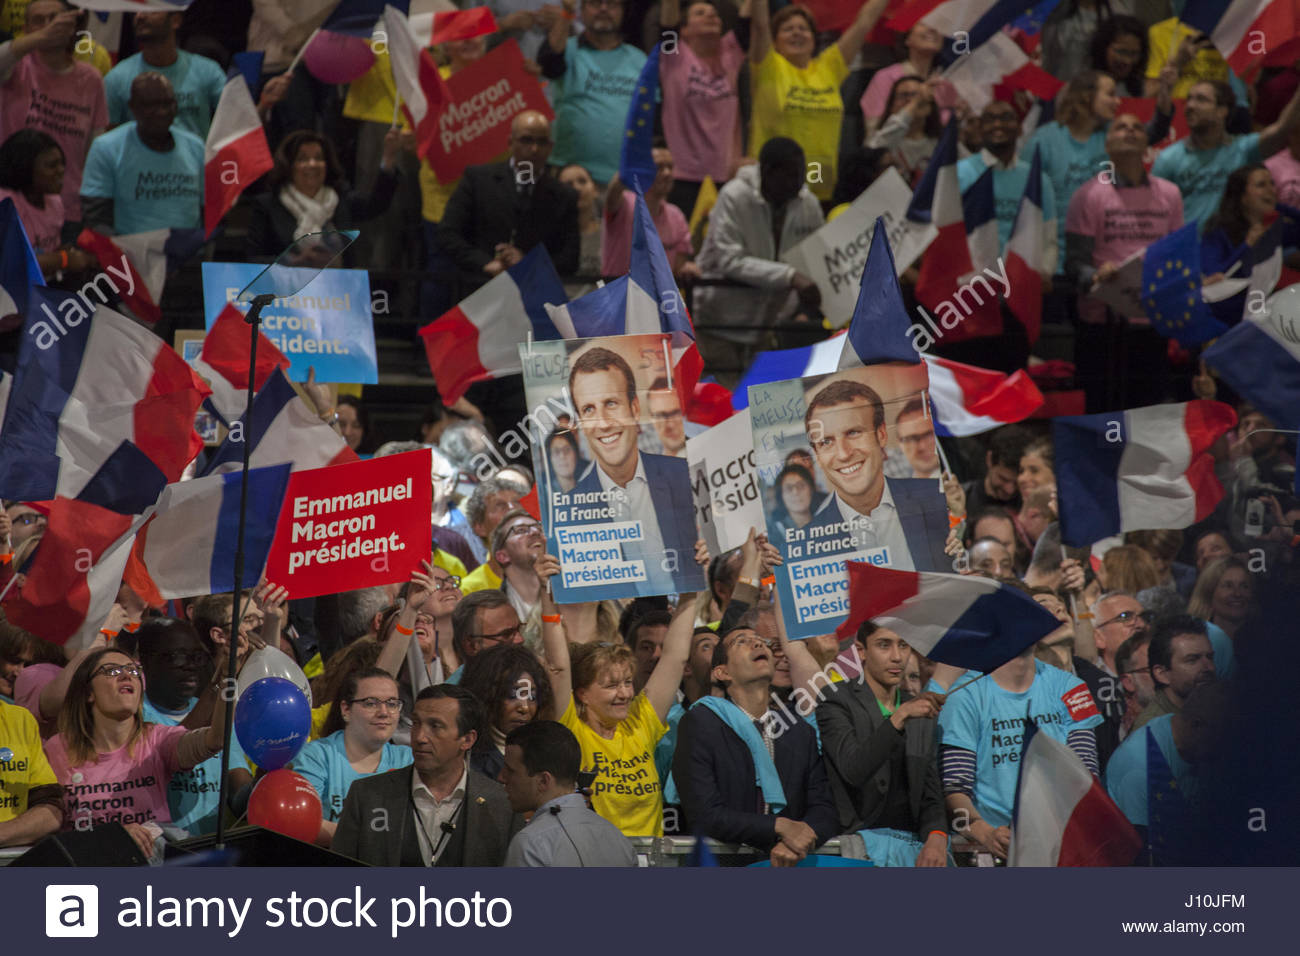 Paris, France. 17th Apr, 2017. Supporters of French presidential candidate Emmanuel Macron cheer as he delivers - Stock Image